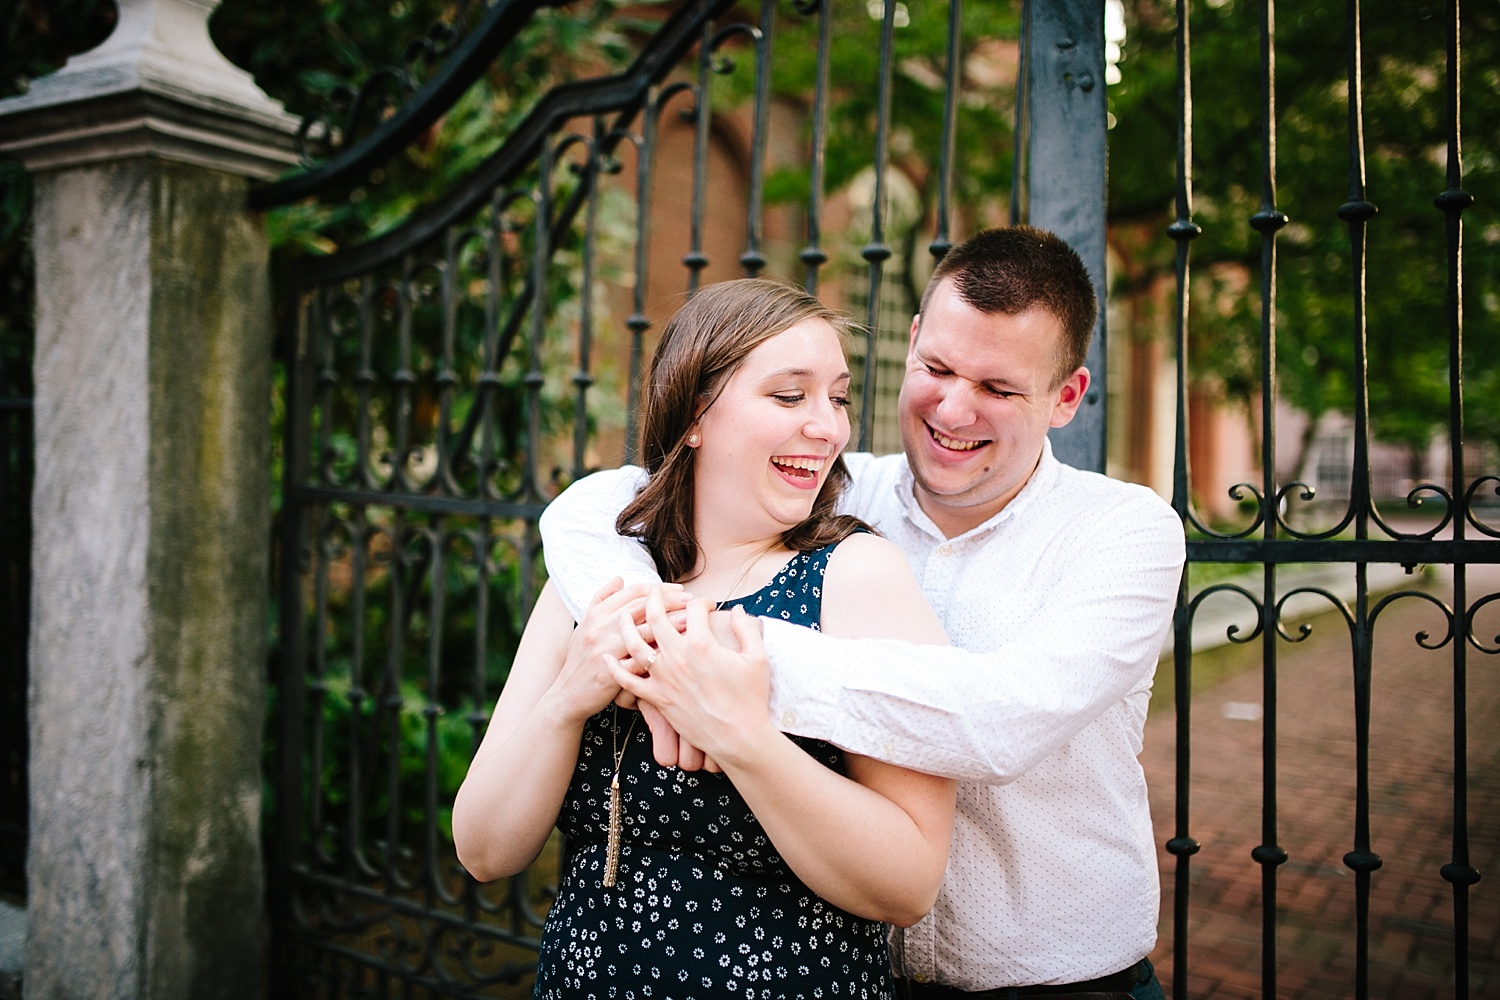 lizandbrandon_oldcity_philadelphia_elfrethsalley_engagement_session_image016.jpg